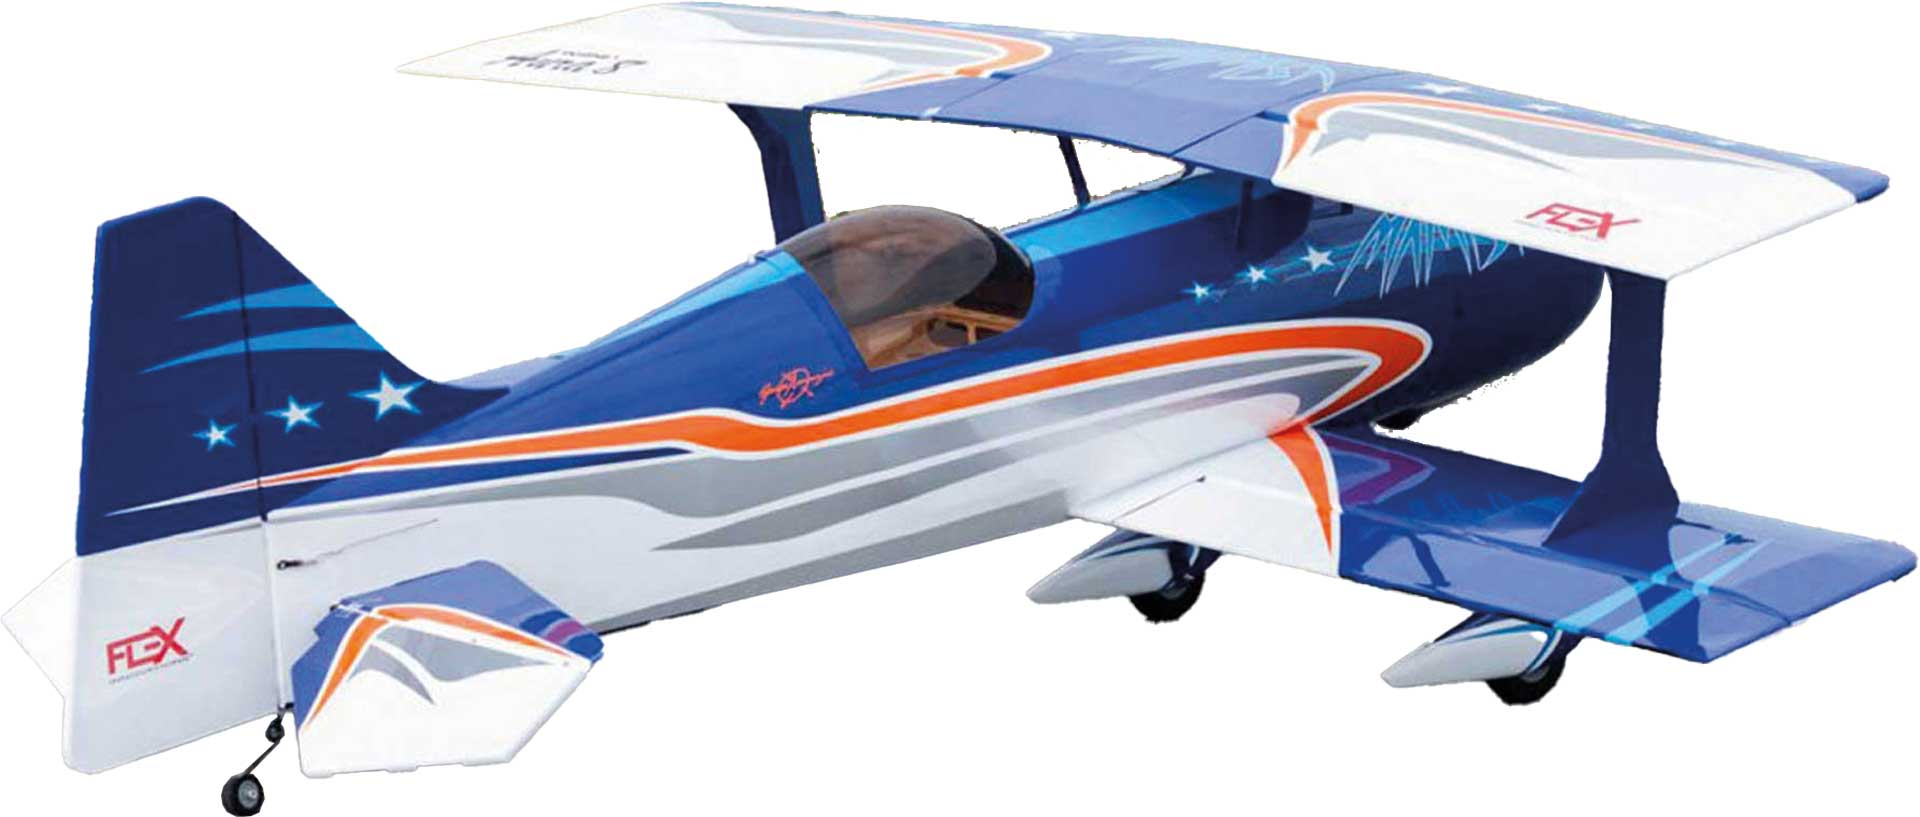 PREMIER AIRCRAFT MAMBA 70CC ARF DOUBLE DECKER BLUE